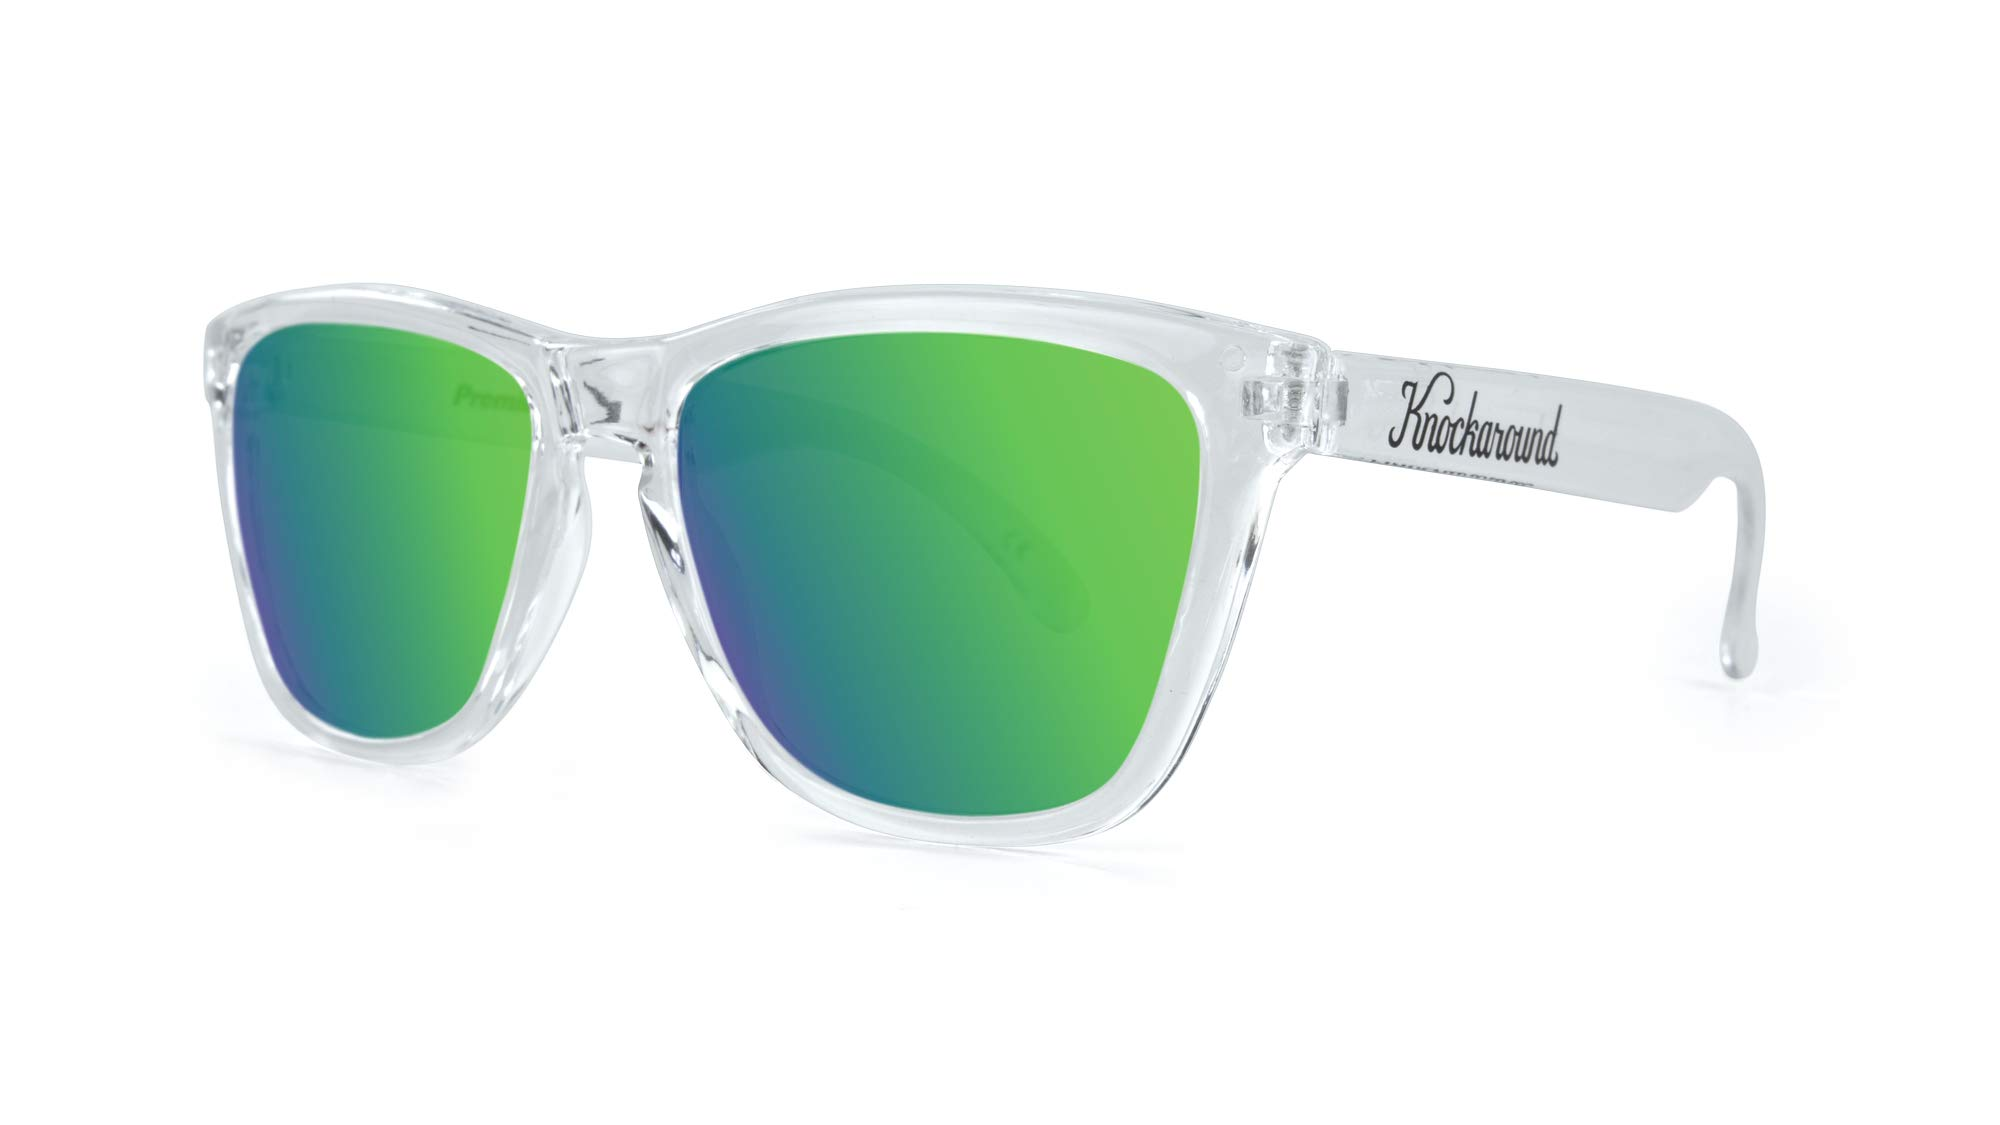 4052e8cdc Knockaround Classics Polarized Sunglasses With Clear Frames/Green  Reflective Lenses